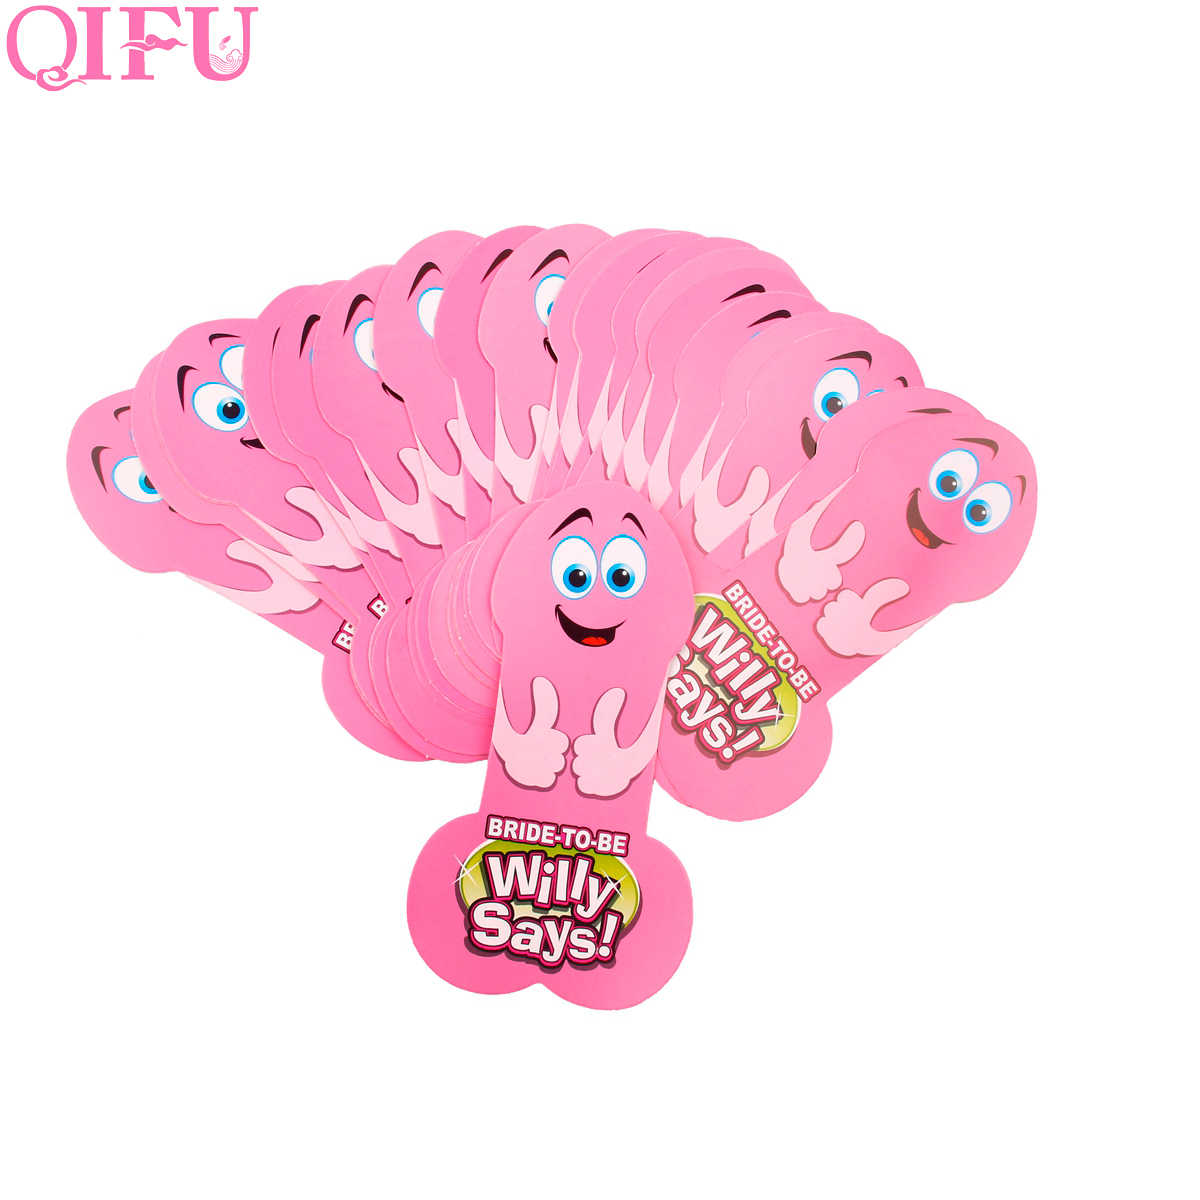 QIFU Hen Party accessories Game Penis Cards Bachelorette Party Bride To Be Team Party Supply  Aliance  Facial Express Card Pink